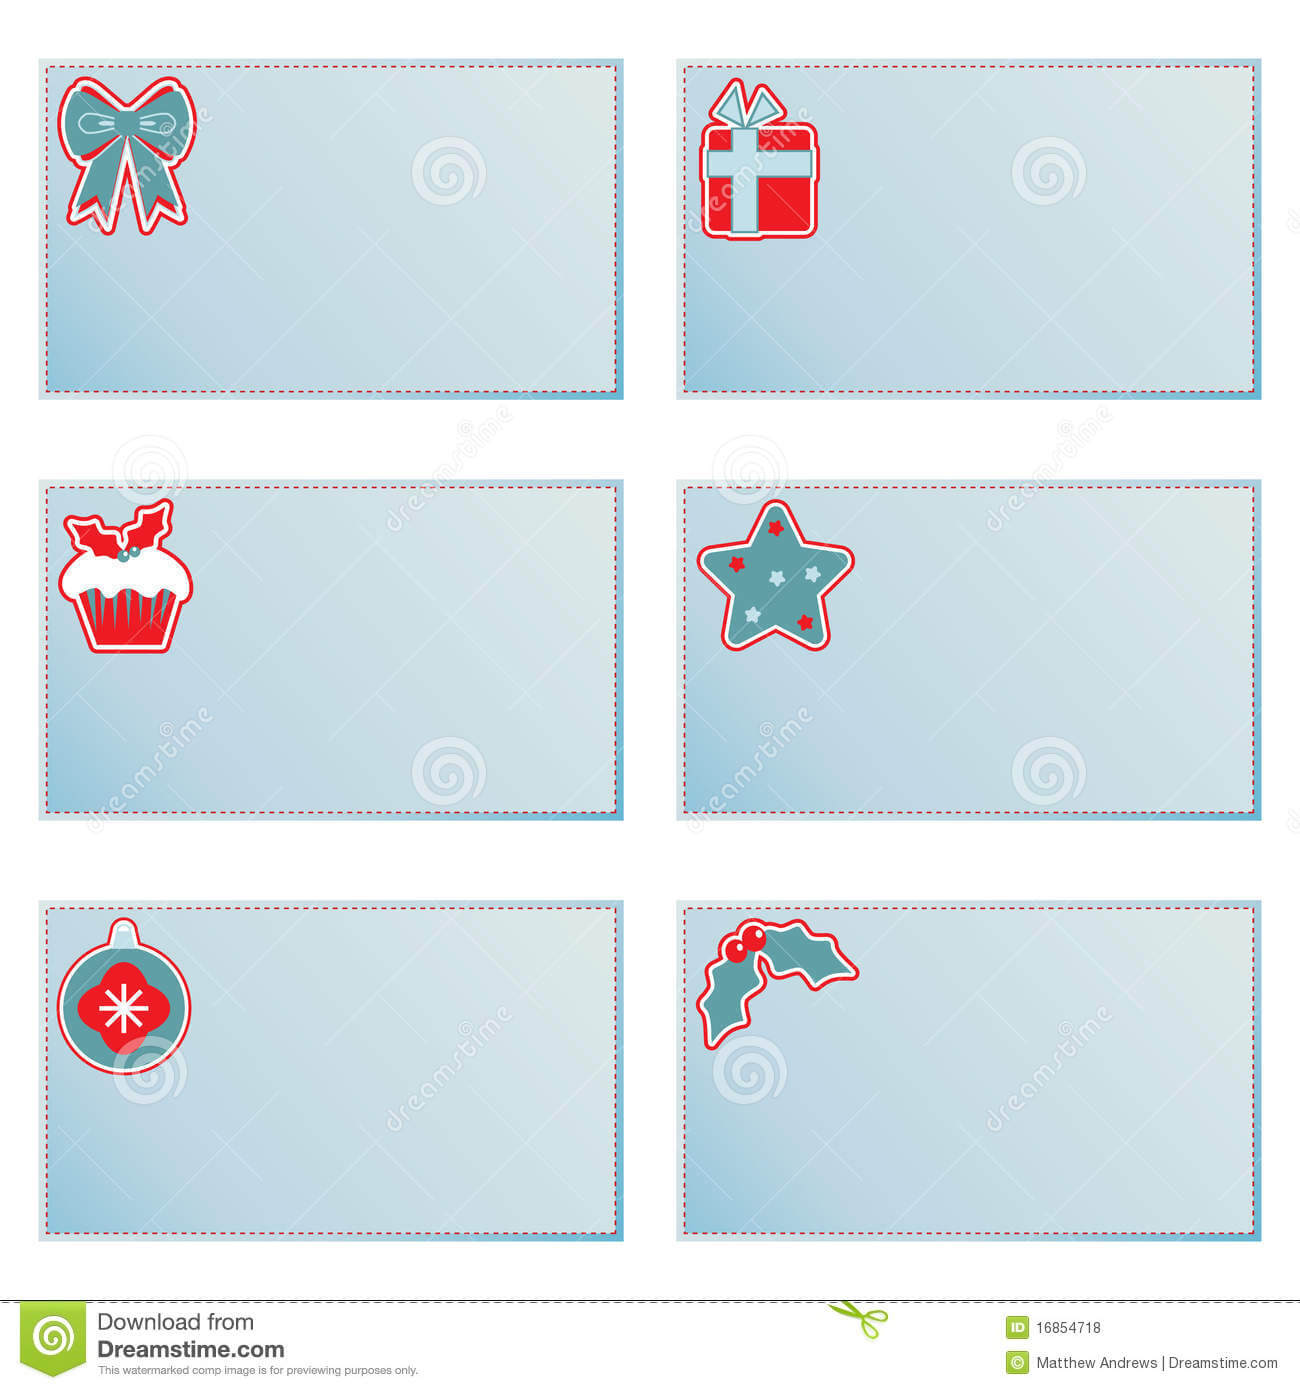 Christmas Note Card Templates - Zohre.horizonconsulting.co Regarding Christmas Note Card Templates